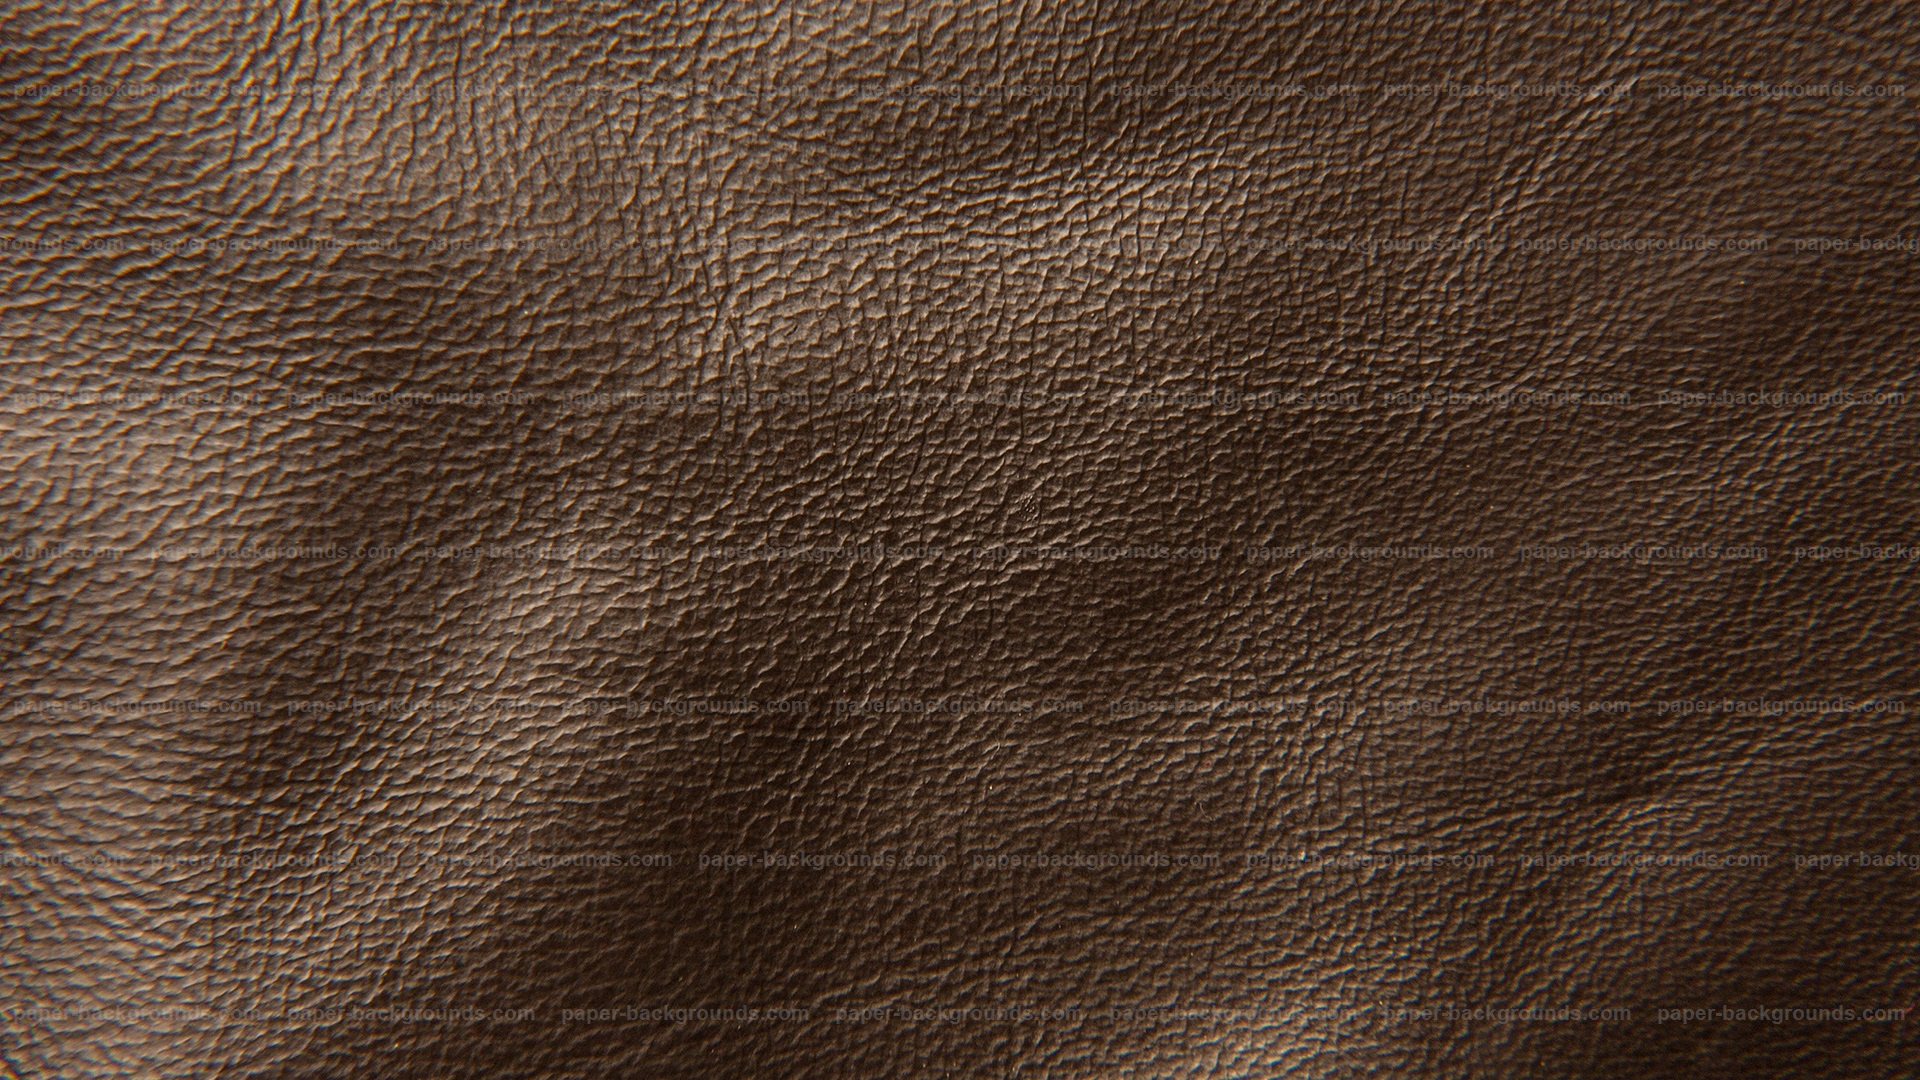 Leather Wallpaper Images Wallpapersafari